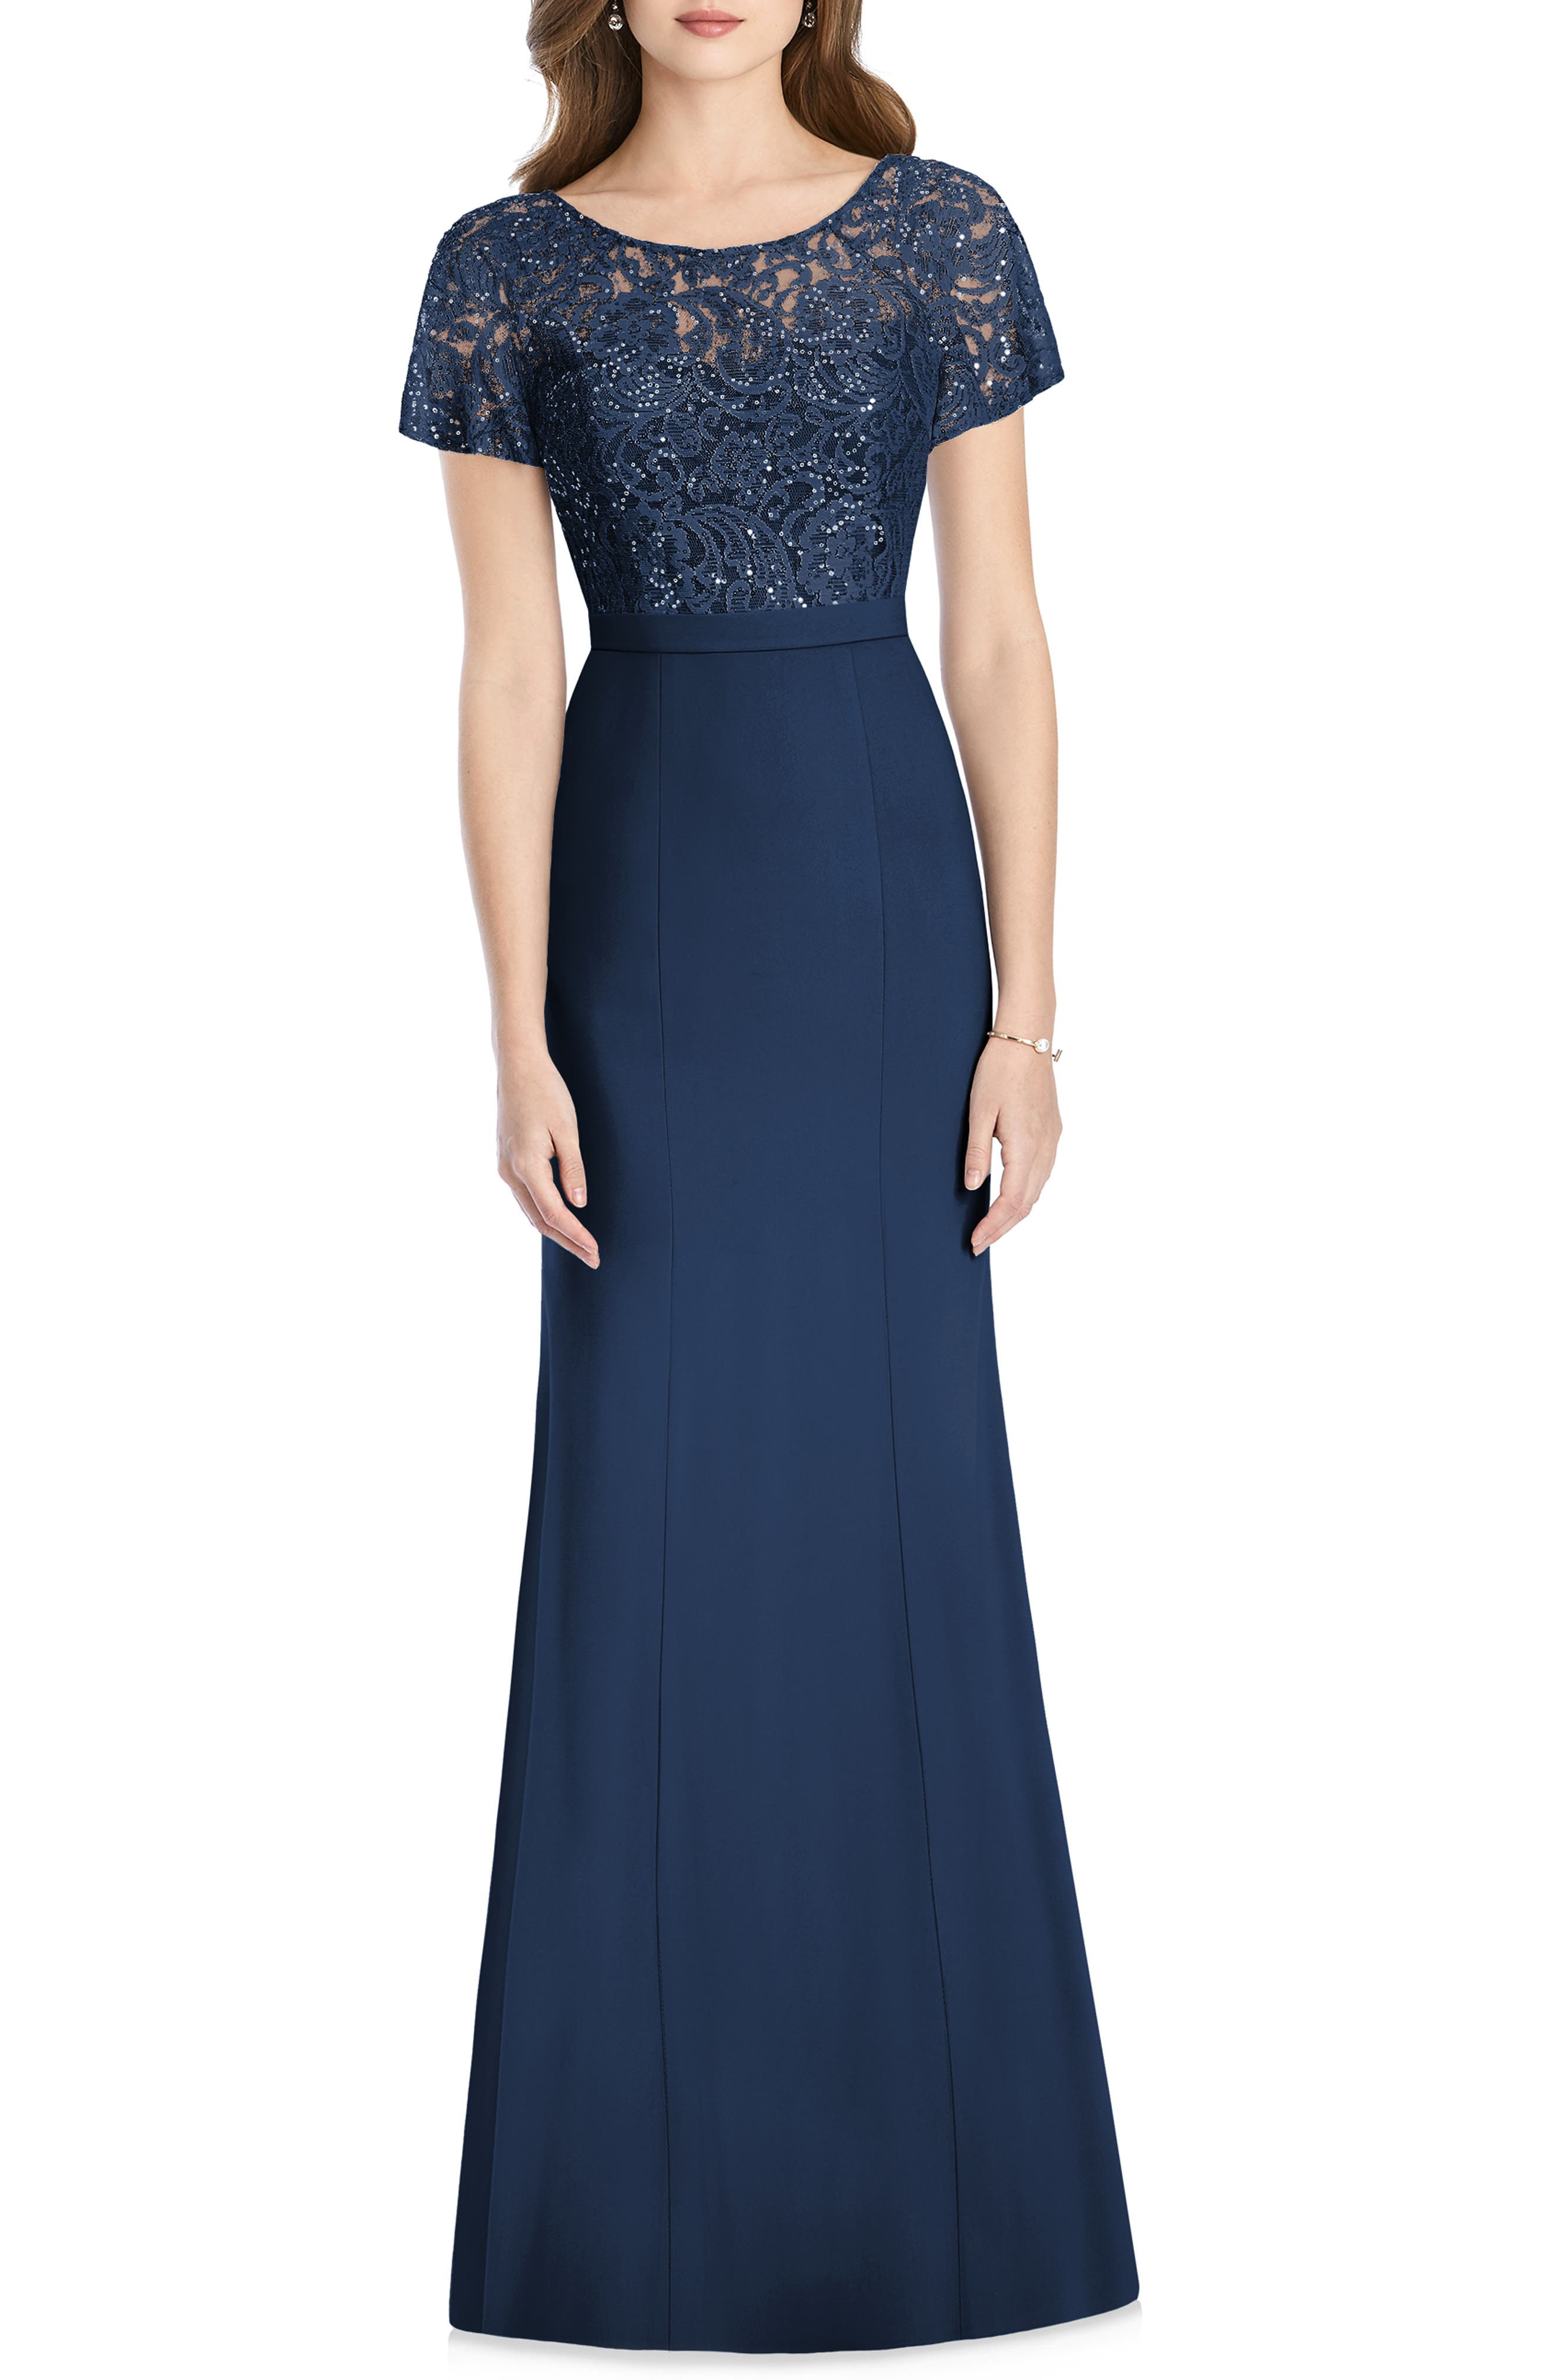 Jenny Packham Embellished Lace Gown, Blue